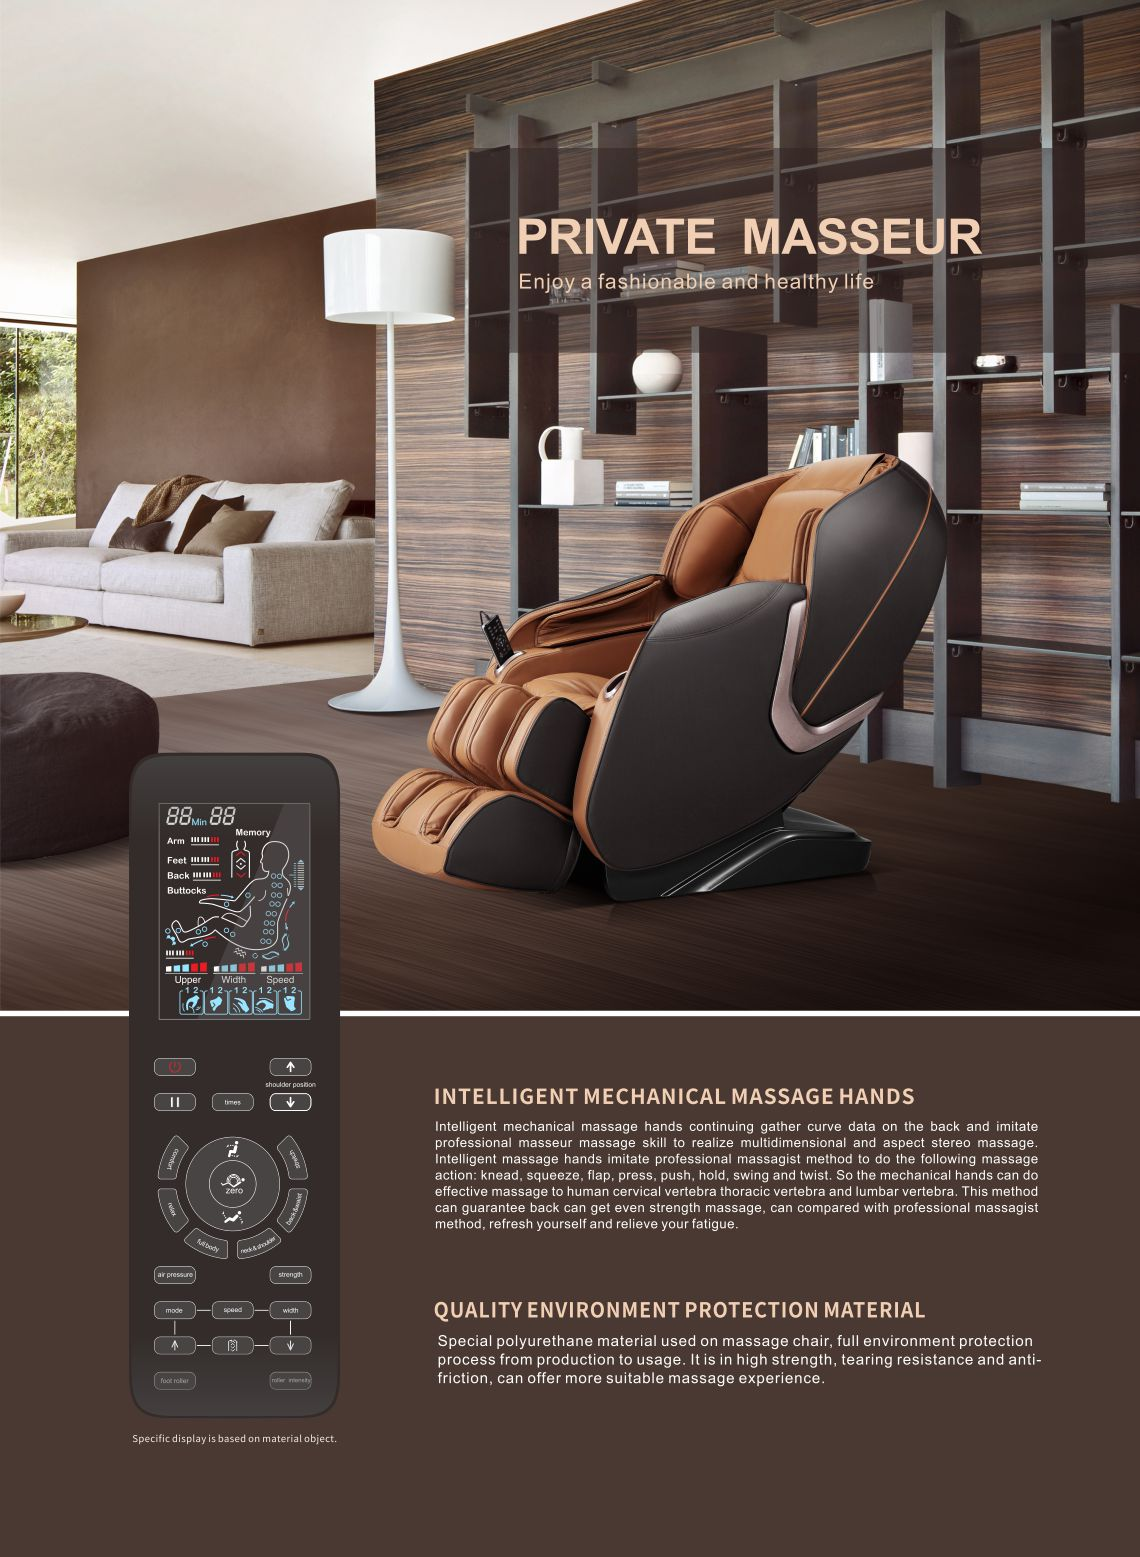 irest massage chair SL-A300 from www.malluae.com